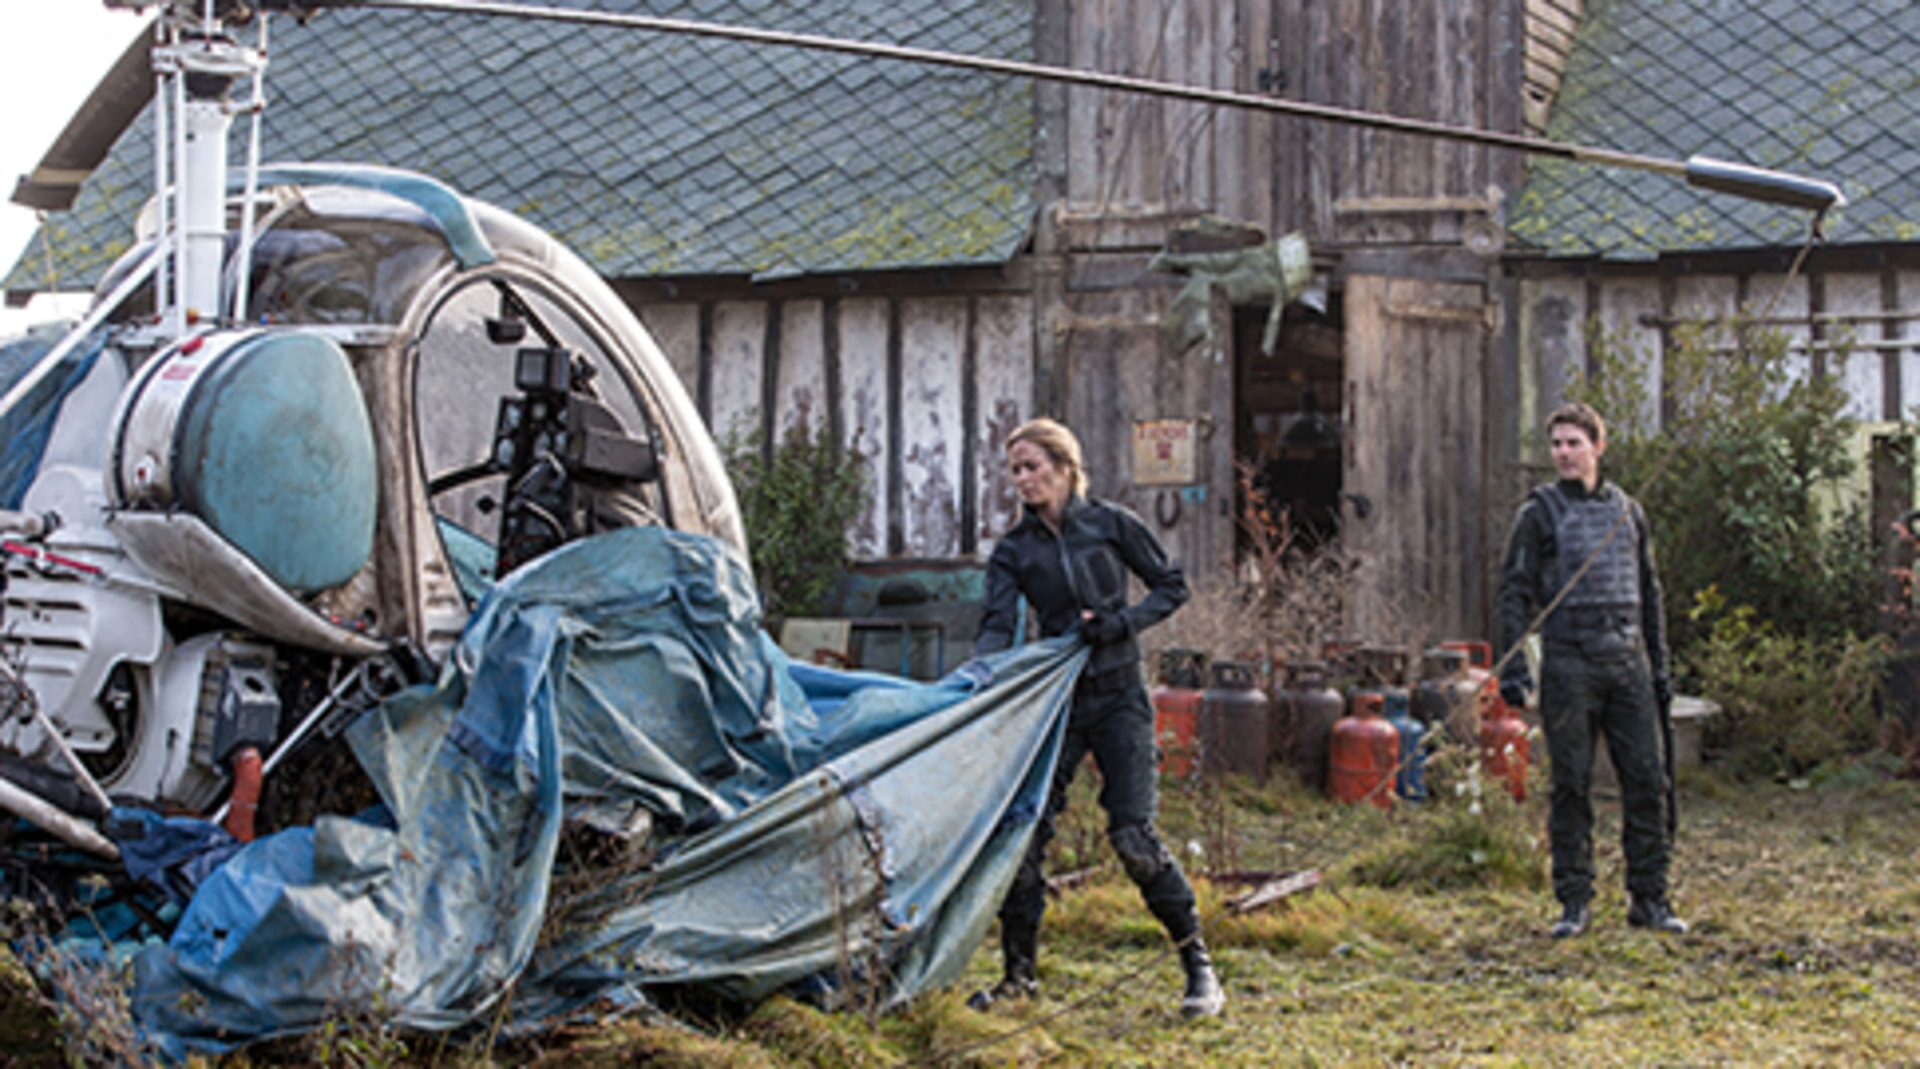 Edge of Tomorrow - Image 7